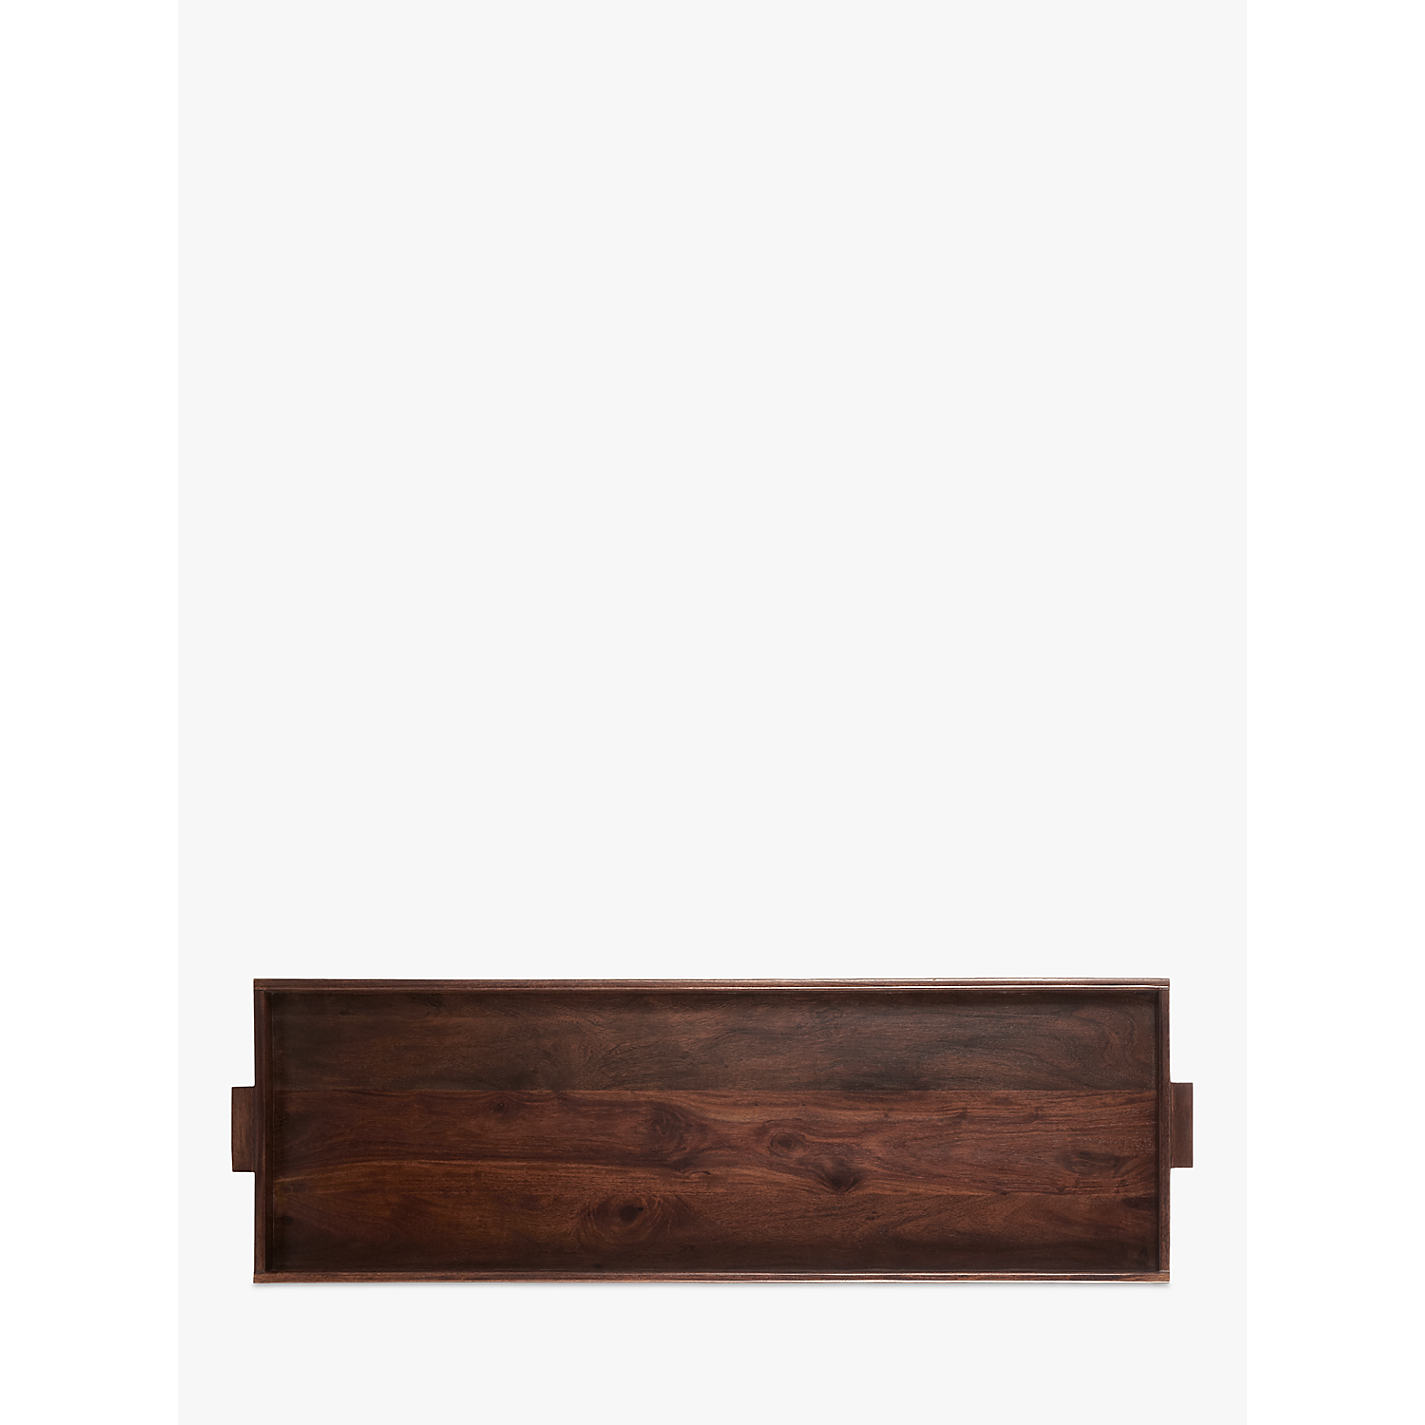 Buy john lewis maharani butlers console table john lewis buy john lewis maharani butlers console table online at johnlewis geotapseo Image collections